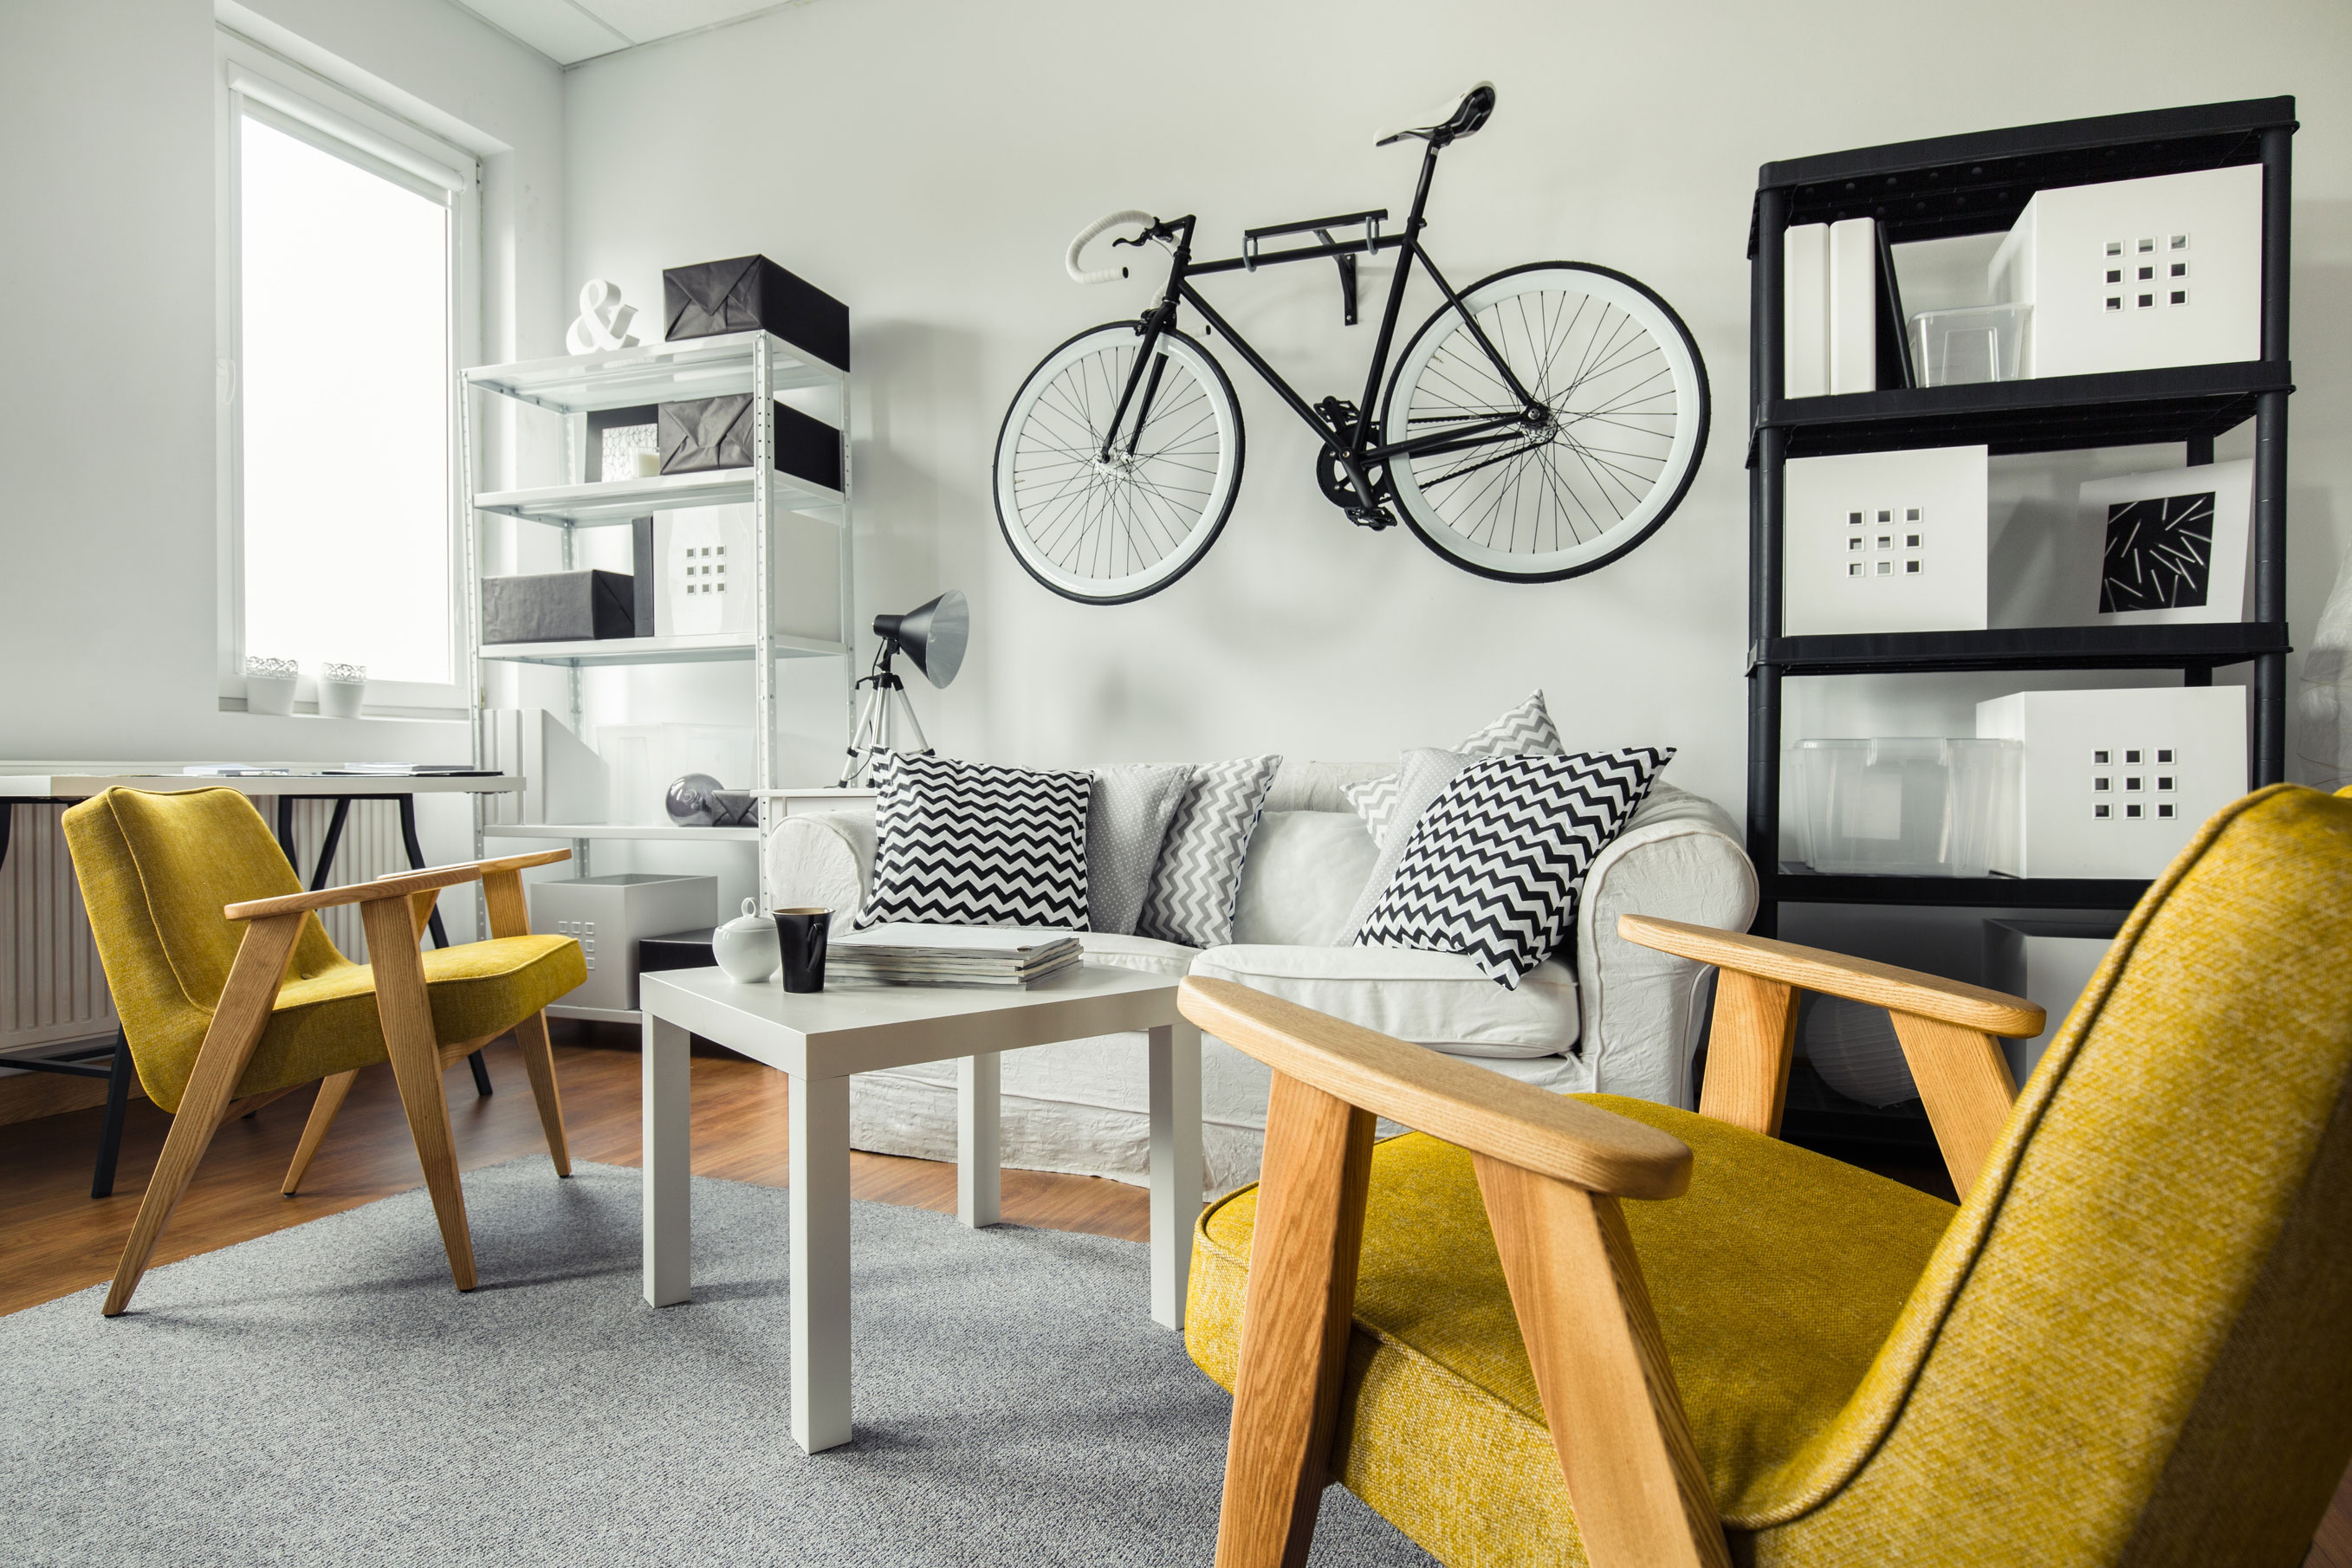 What your Interior Design preferences say about you